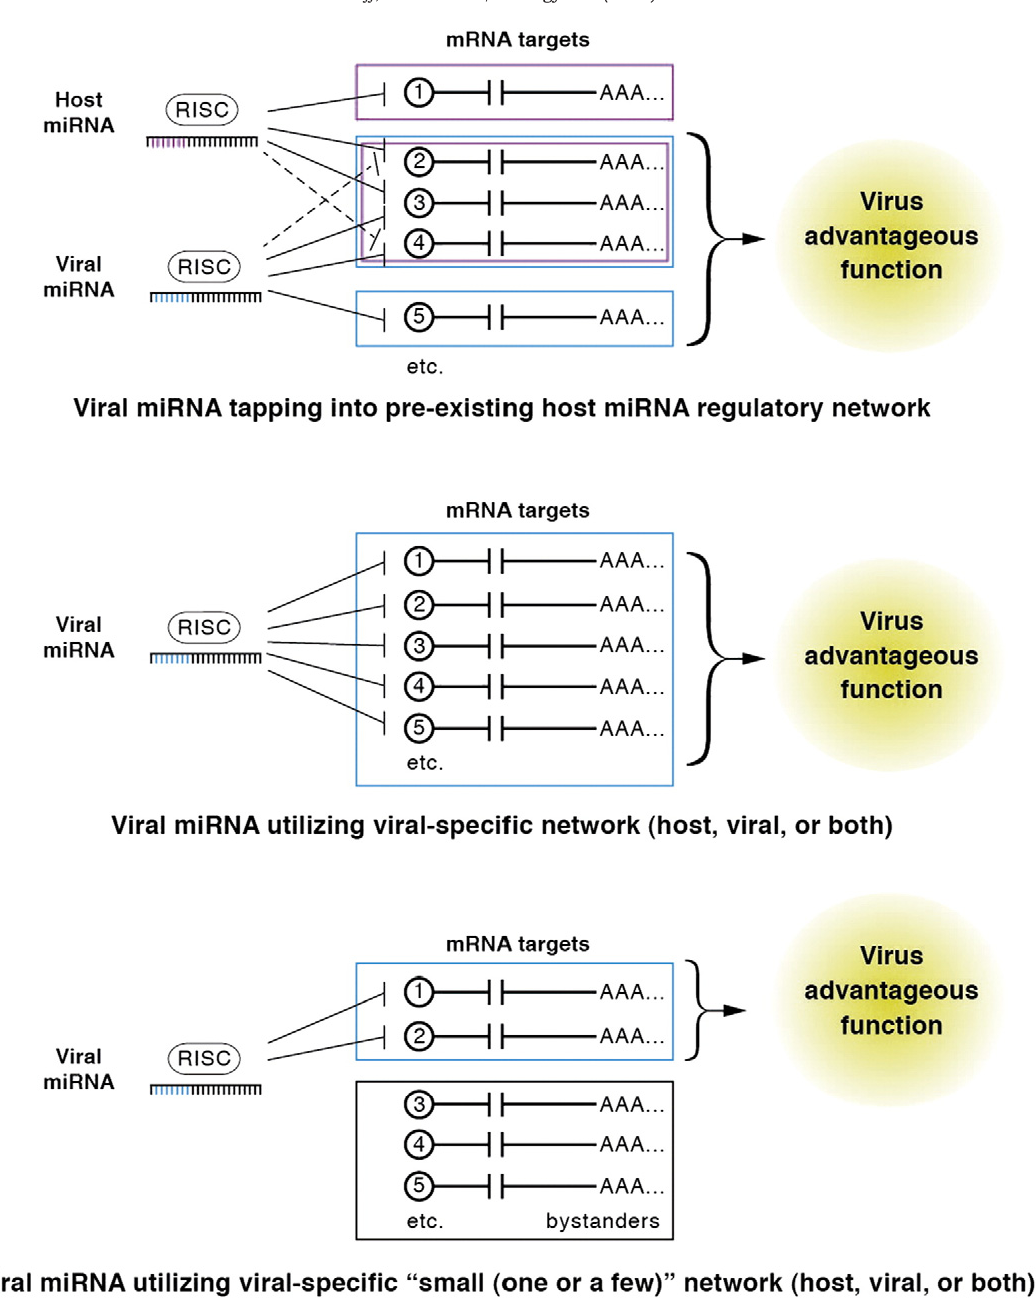 """Fig. 5. A hypothesis: most virus-encoded miRNAs will regulate a target mRNA network substantially different than their host counterparts. With a few rare, important exceptions, most virus miRNAs are not predicted to tap into existing host miRNA-target regulatory networks (top panel). Some virus-encoded miRNAs have been shown to regulate a fairly large number of mRNA transcripts involved in a particular process, despite the fact that these miRNAs share no seed sequence identity with host miRNAs. This implies that sometimes, virus-encoded miRNAs are able to tap into viral-specific, miRNA–mRNA transcript networks (Middle panel). Finally, we propose the hypothesis that the major function of many virus-encoded miRNAs will be to regulate a small number of key (host or viral) transcripts (bottom panel). Despite the fact that exogenous expression of such miRNAs will result in changes in the steady state levels of numerous (~hundreds) of transcripts, only a small minority of these need be of functional relevance and the rest may simply be bystanders. Parsing out the relevant targets is the major challenge of """"bottom-up"""" approaches (described in Fig. 3)."""